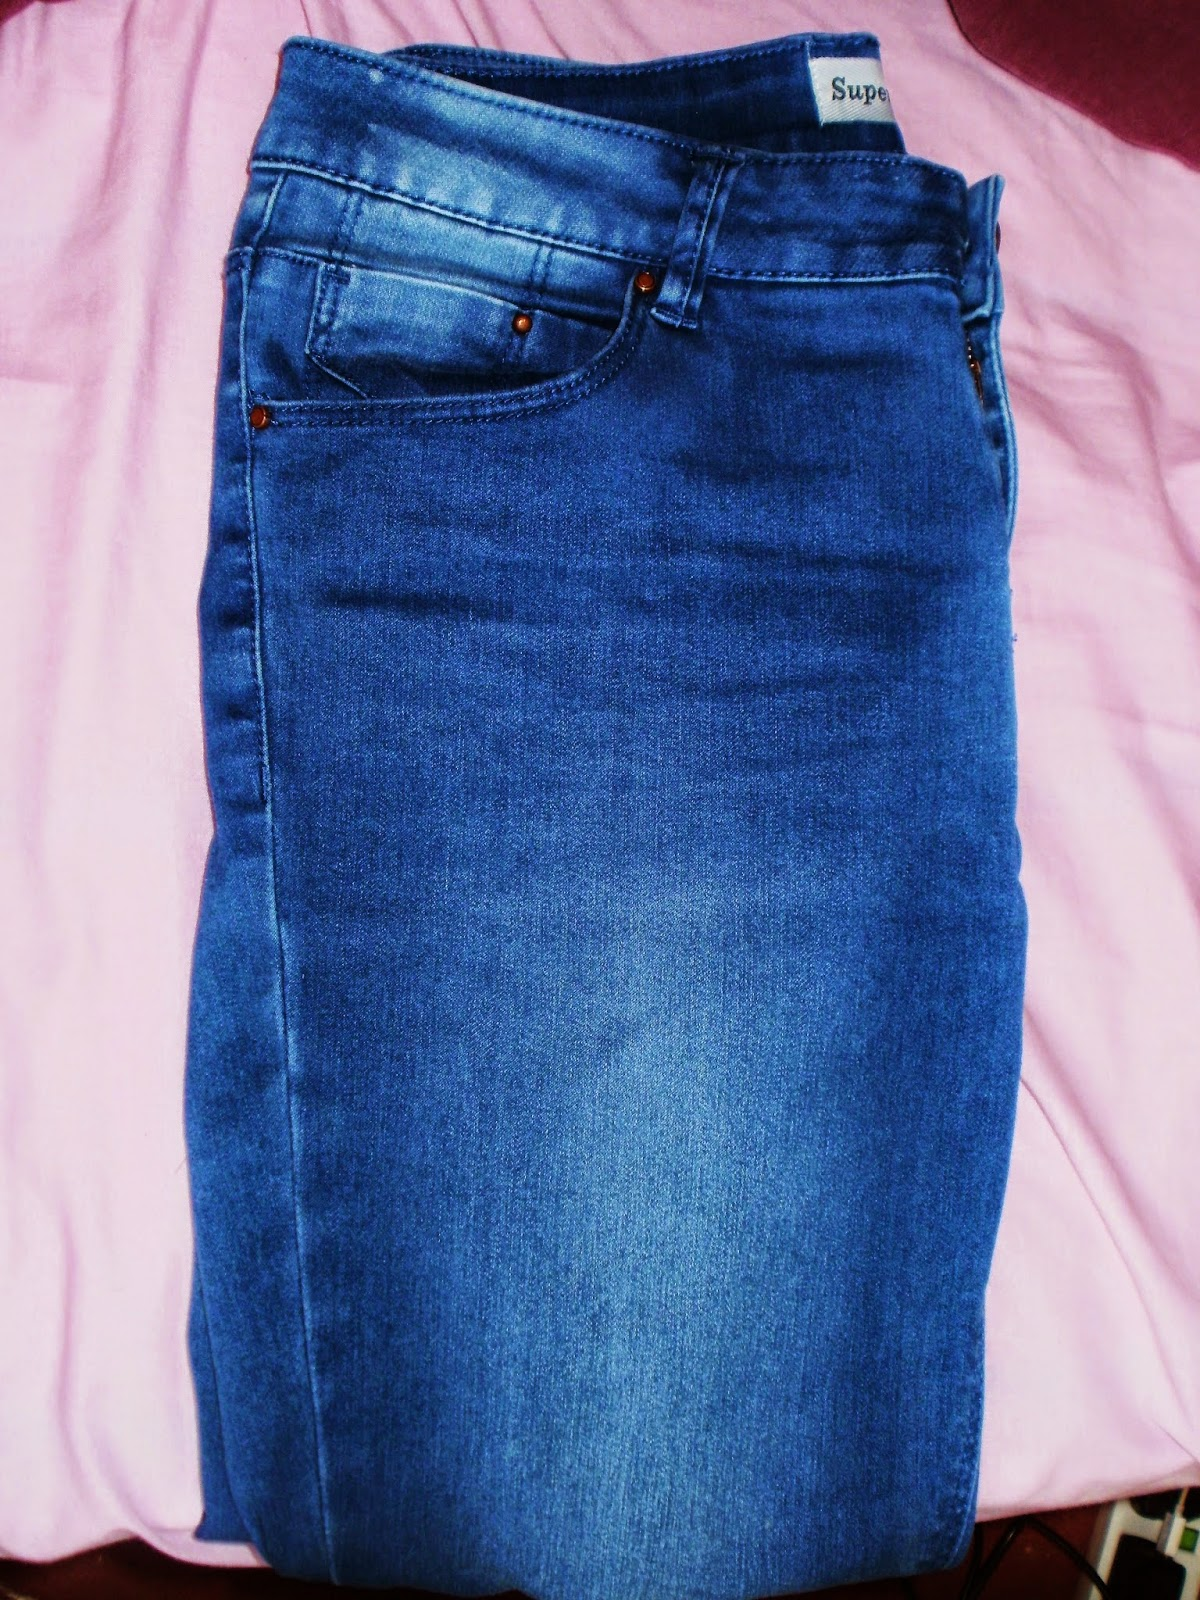 Super Skinny New Look Jeans